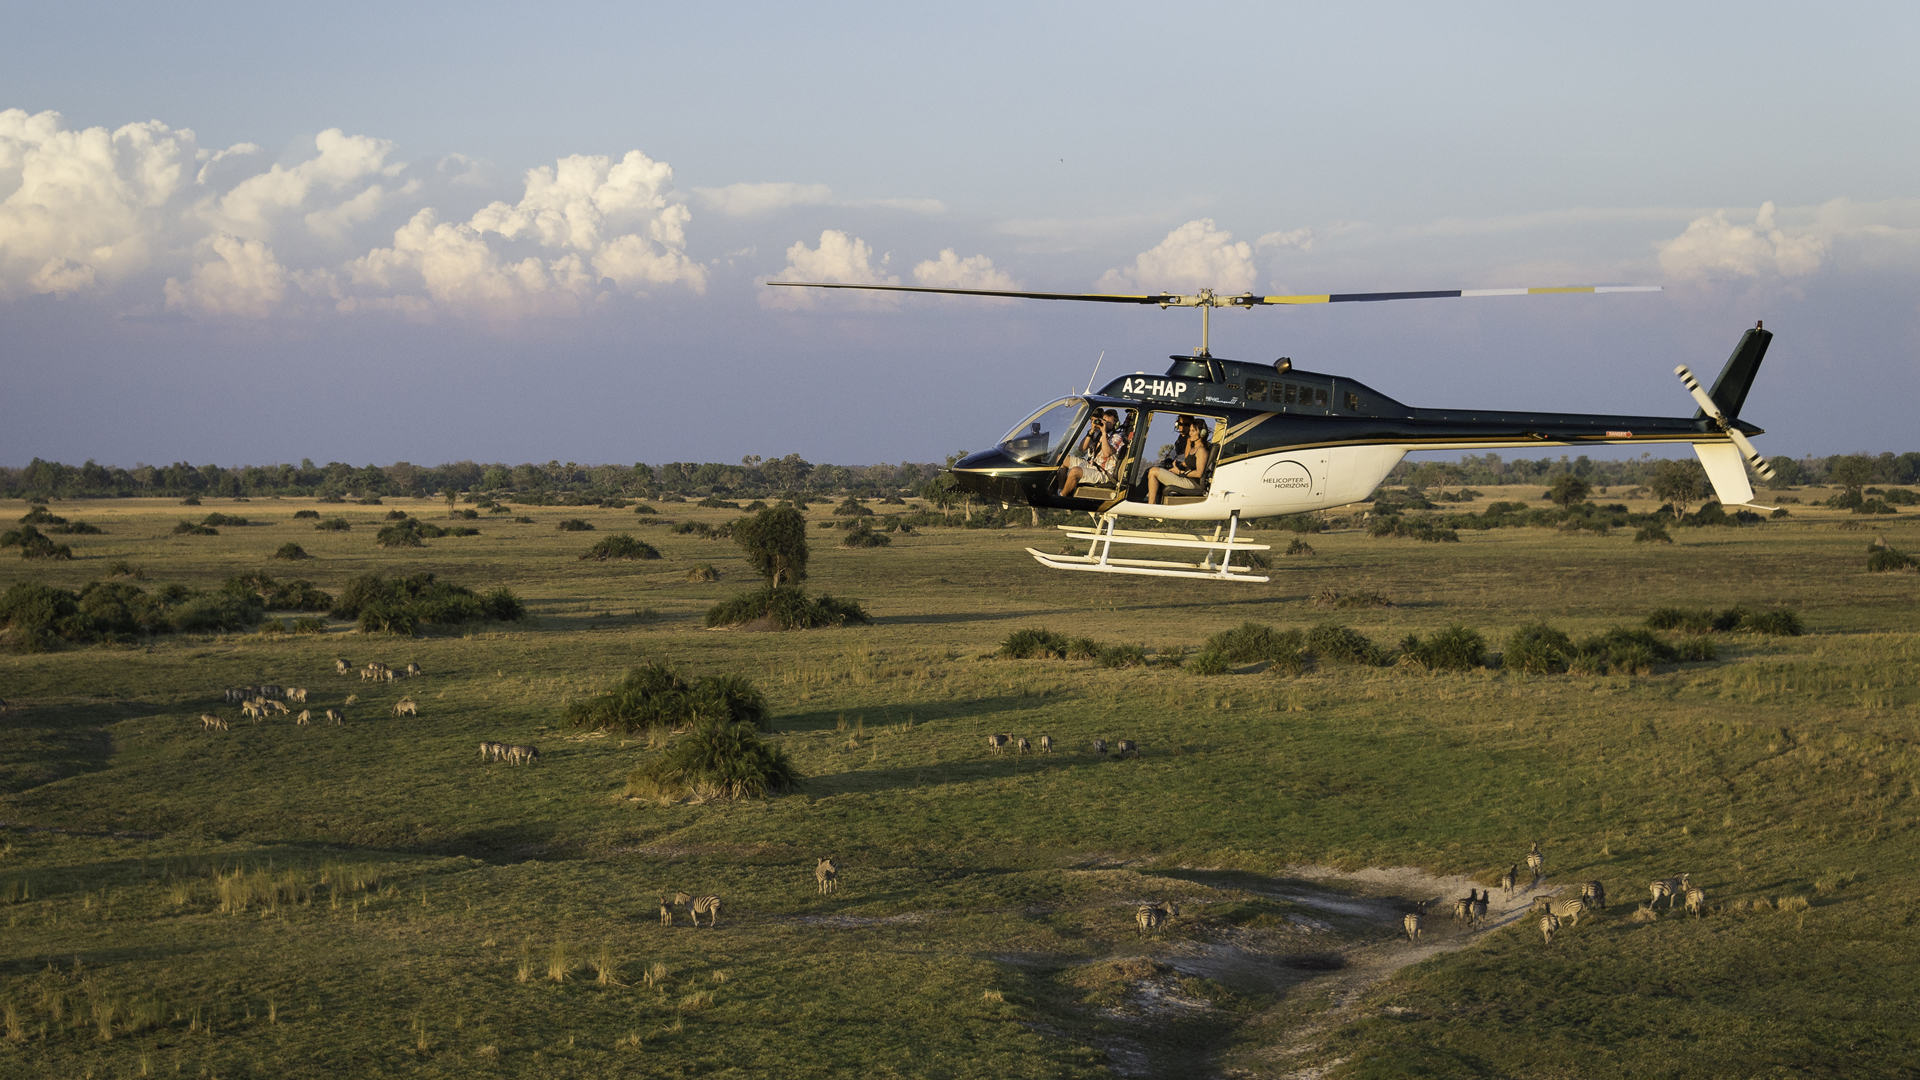 Safari from the Air helicopter horizons botswana